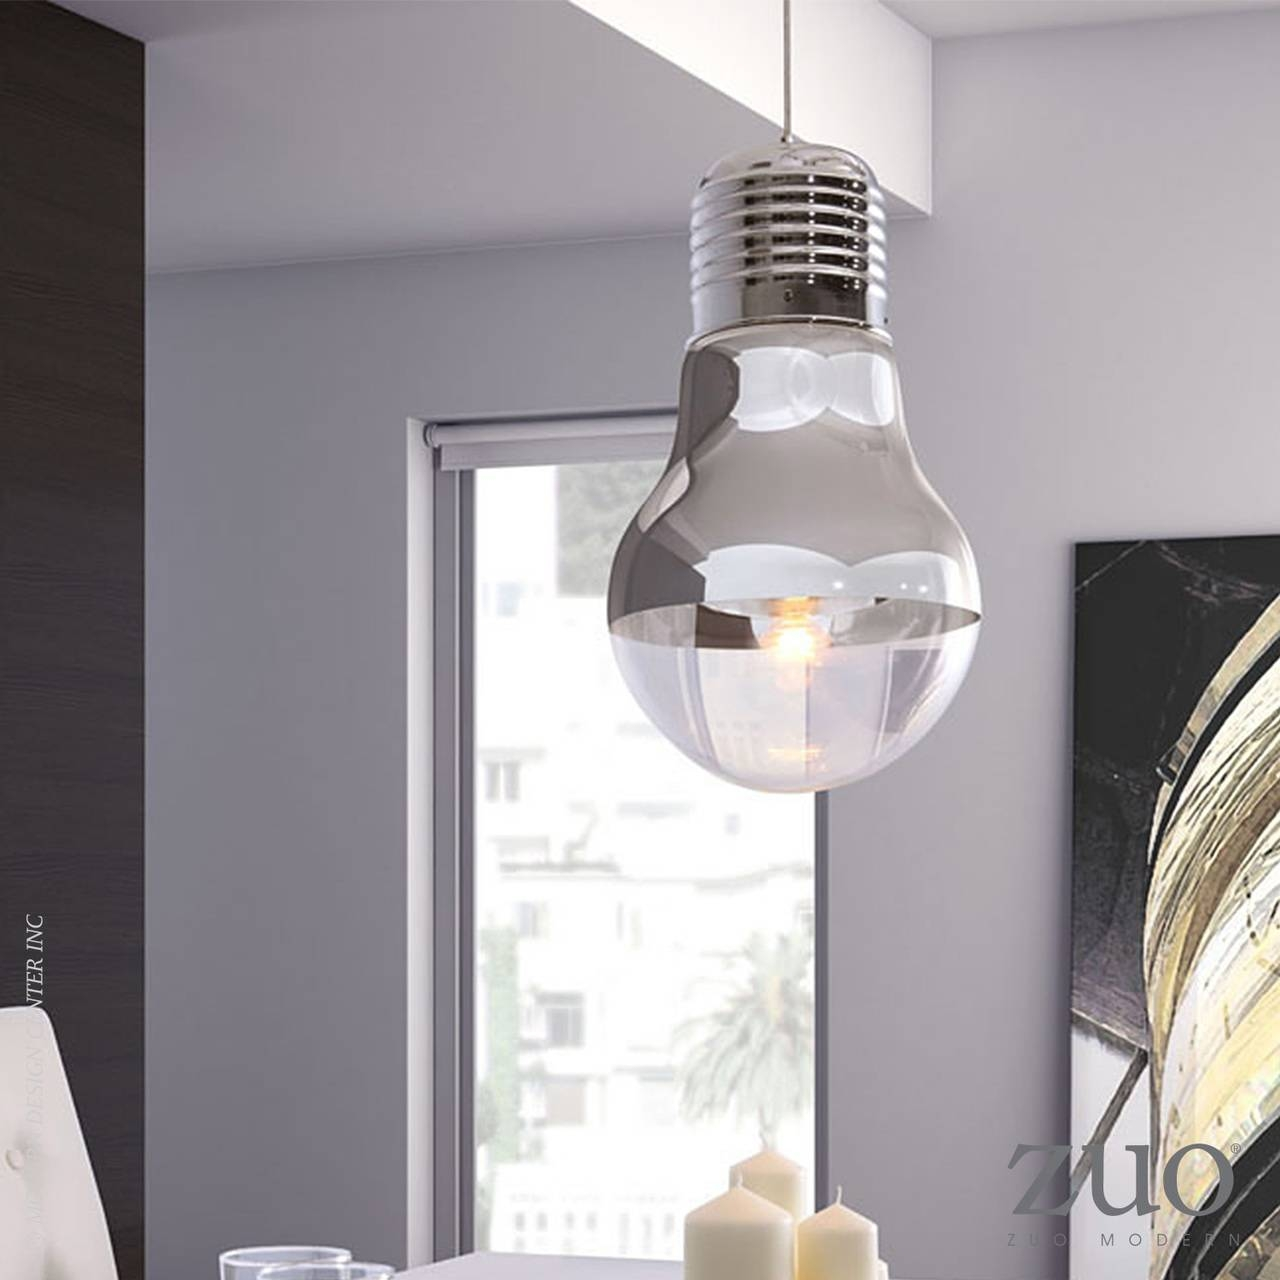 Gliese Ceiling Lamp - 50089 | Zuo Mod | Metropolitandecor with Giant Lights Bulb Pendants (Image 12 of 15)